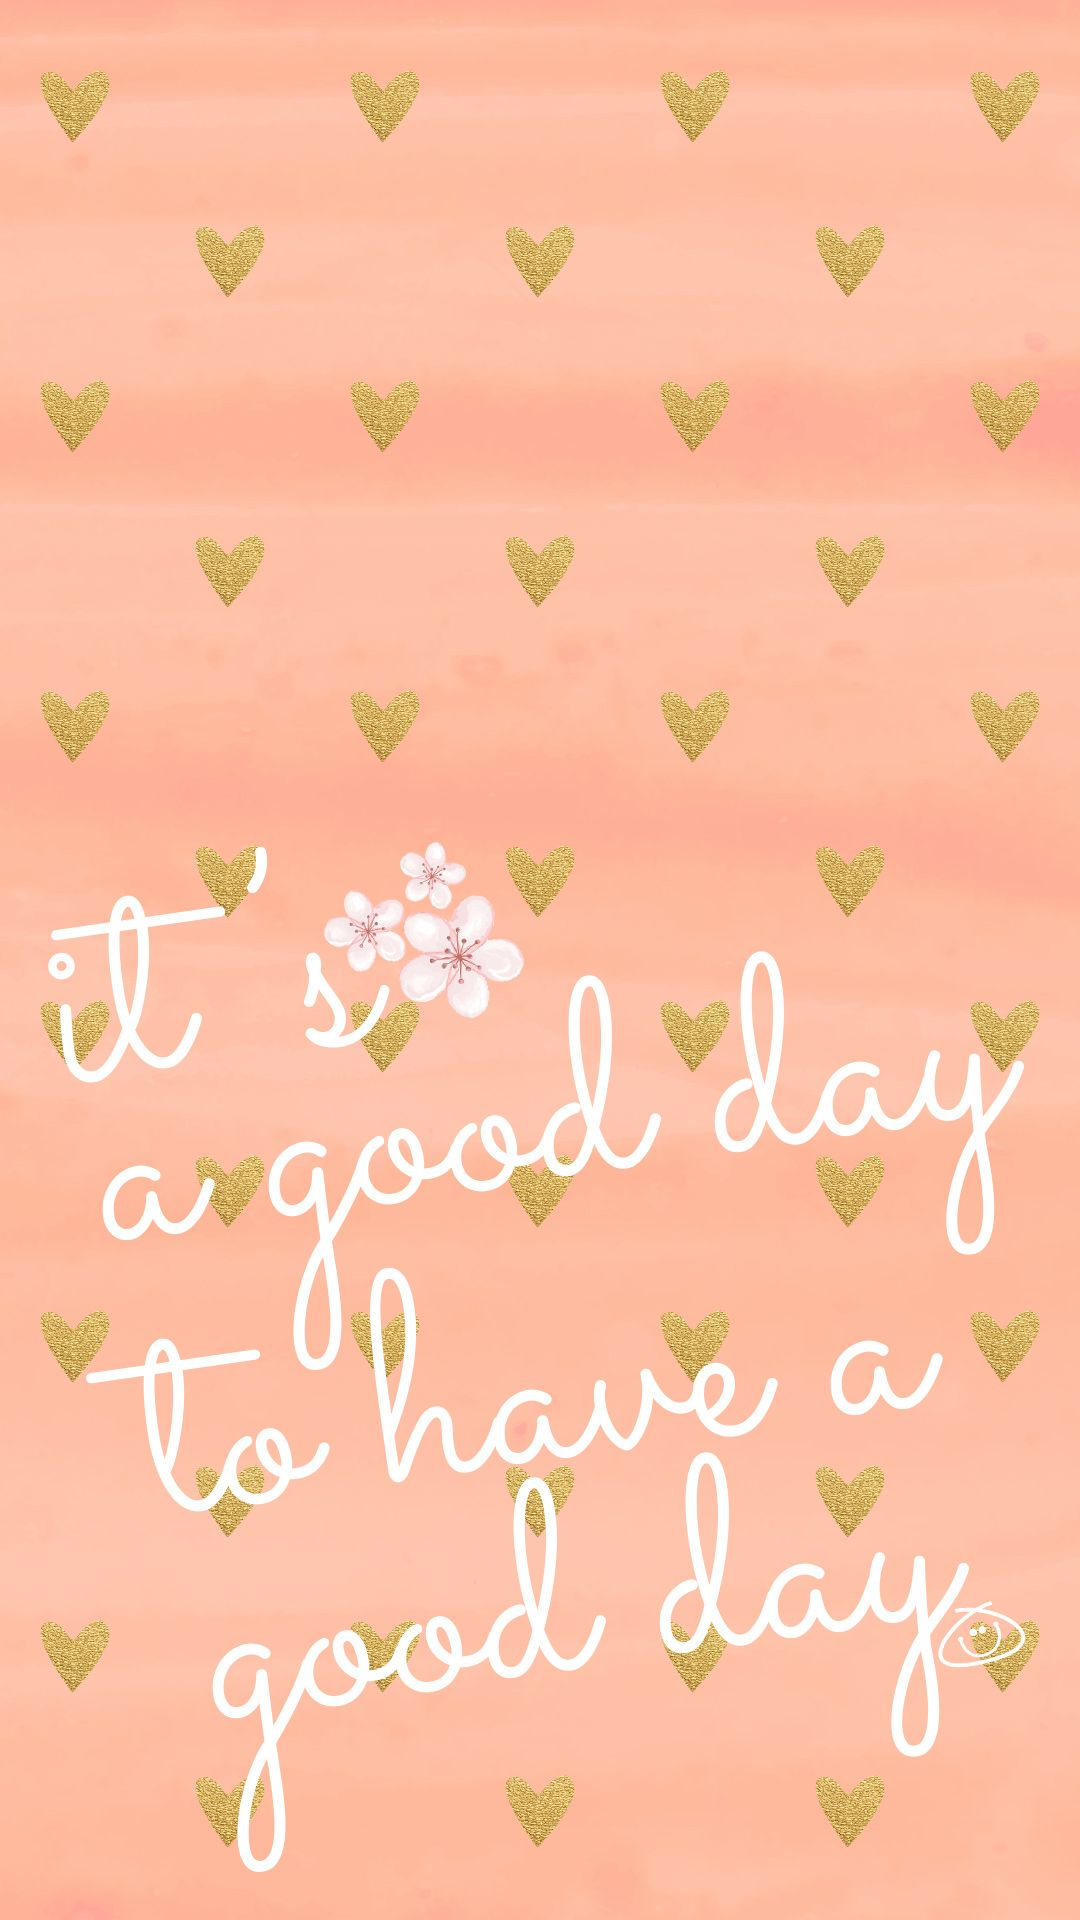 Happiness Practices On November 18th Colorful Zone Cute Wallpapers Quotes Wallpaper Quotes Cute Quotes